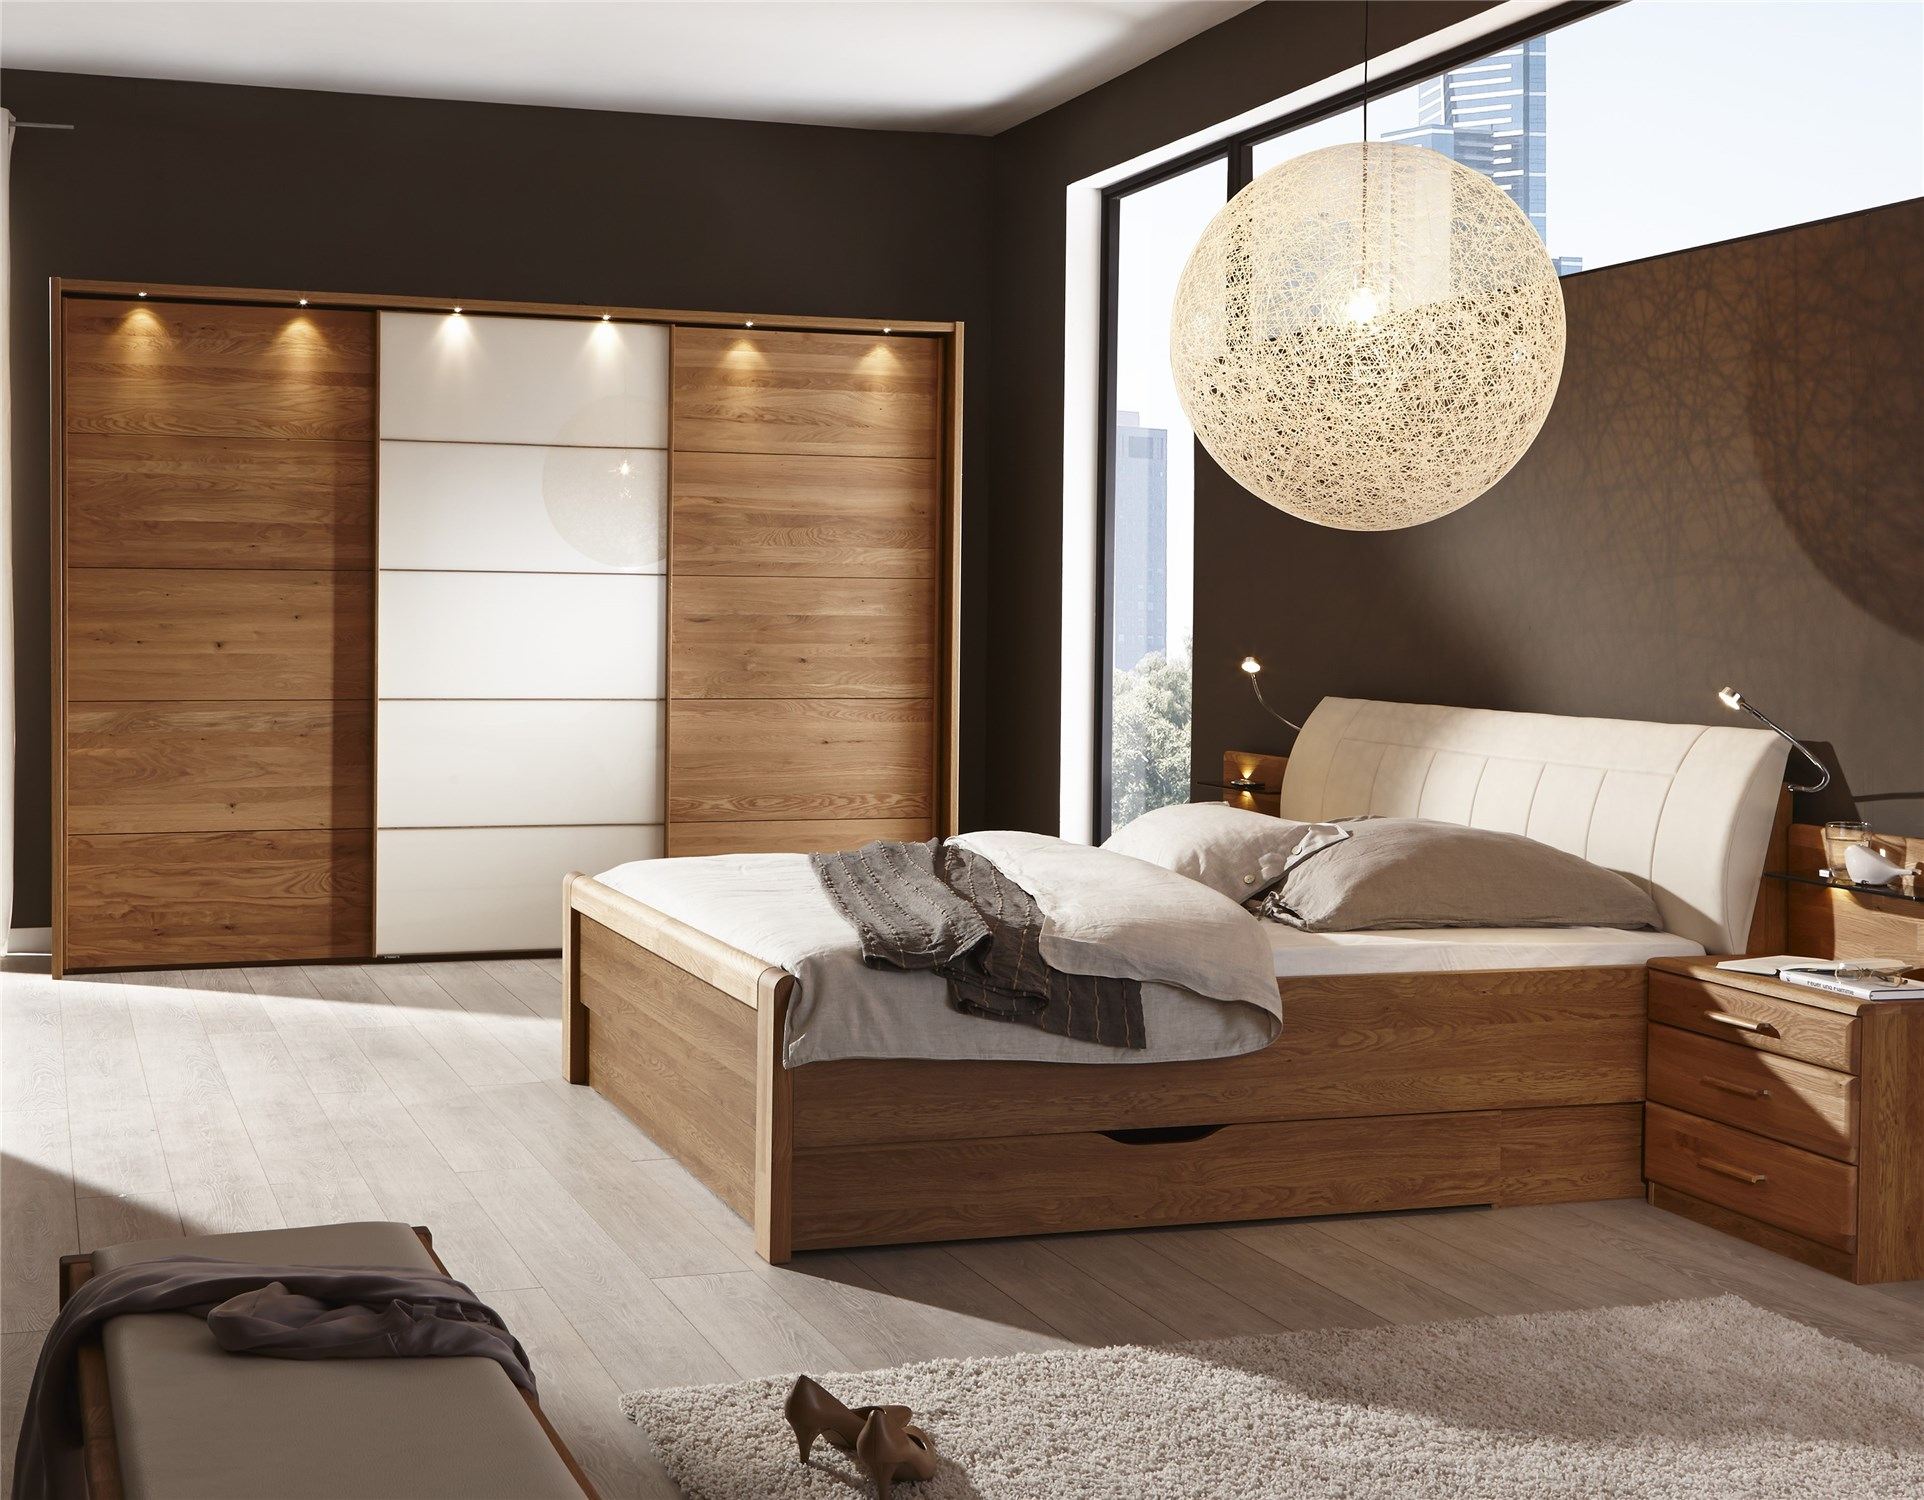 ZEFIRO by Stylform, Semi Solid Oak and Glass or Mirror Bedroom Set